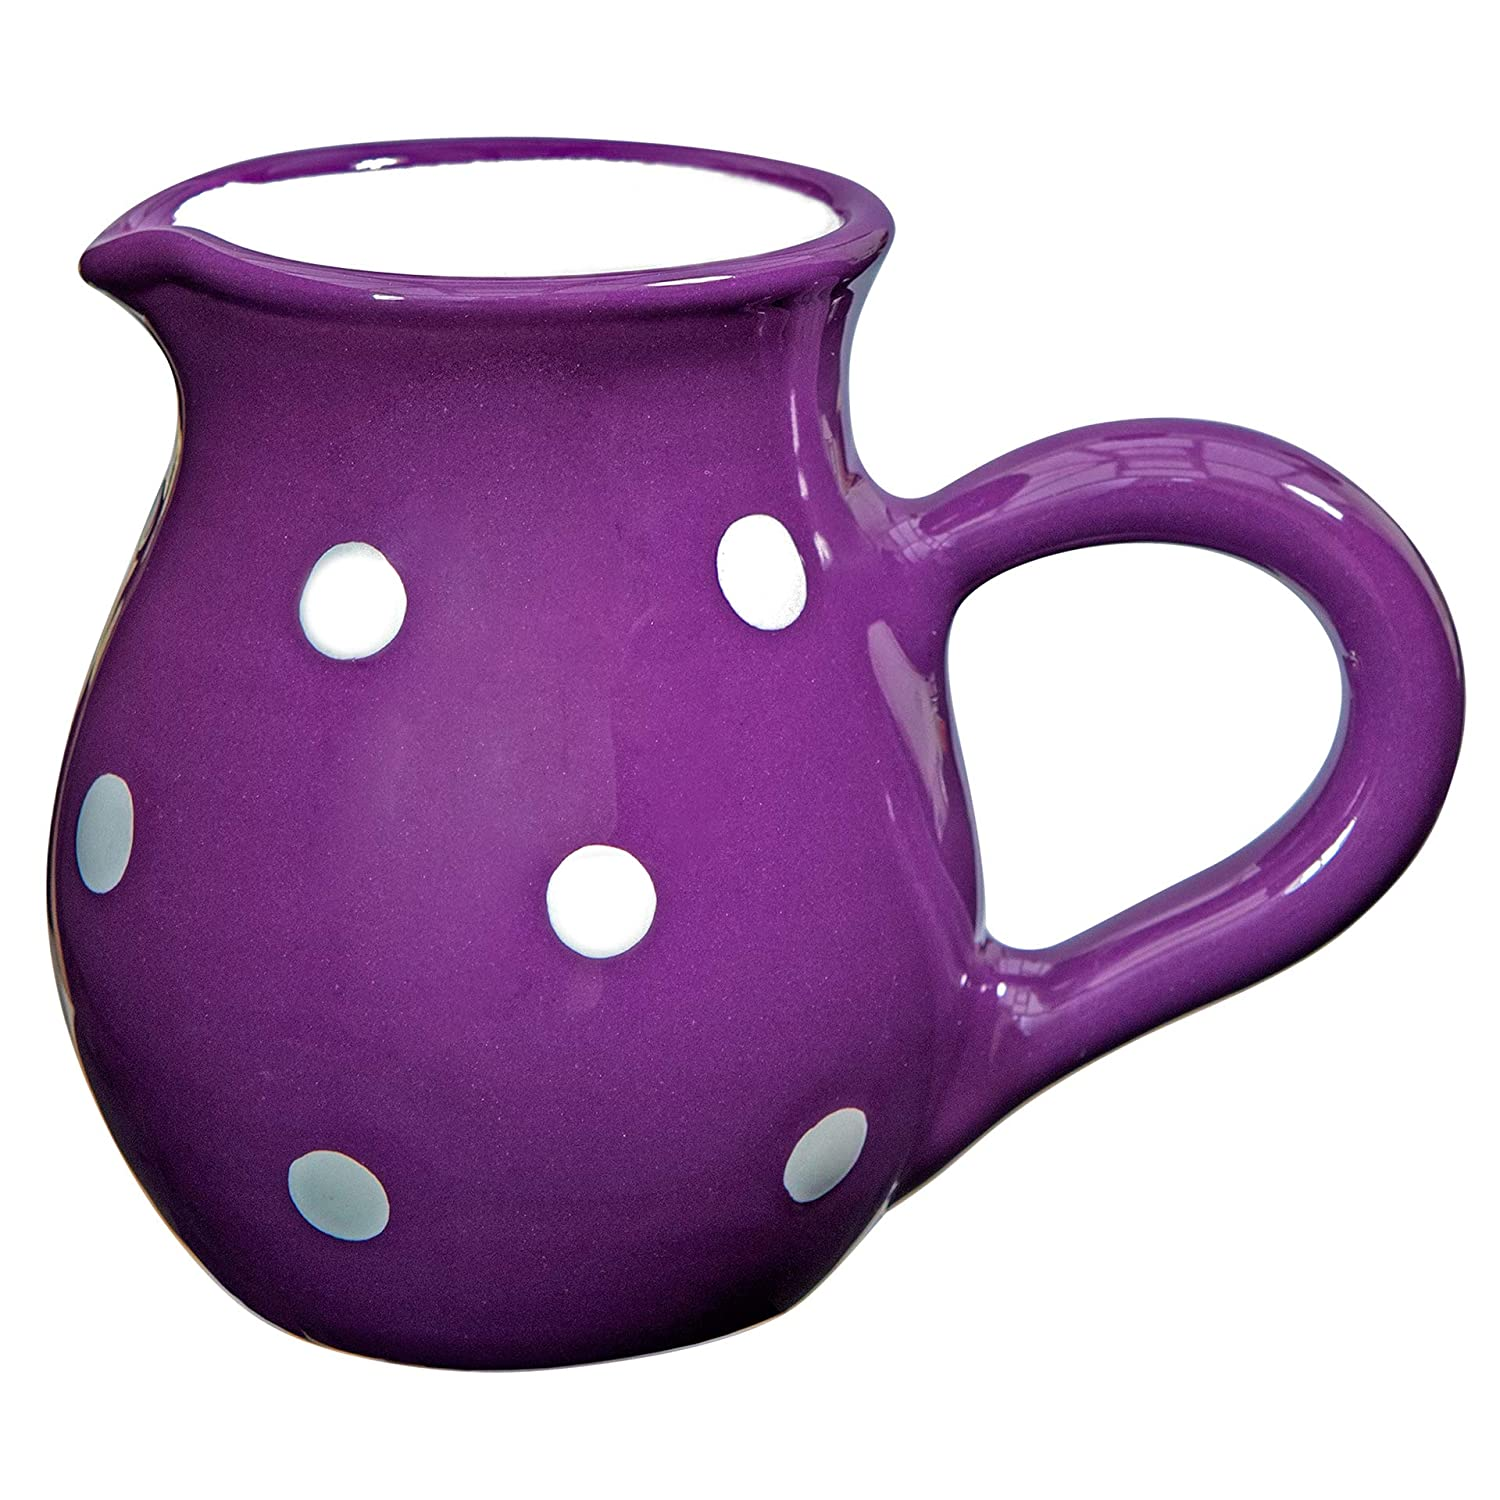 City to Cottage Purple And White Polka Dot Handmade Hand Painted Ceramic Milk Jug Creamer Pourer citytocottage.co.uk